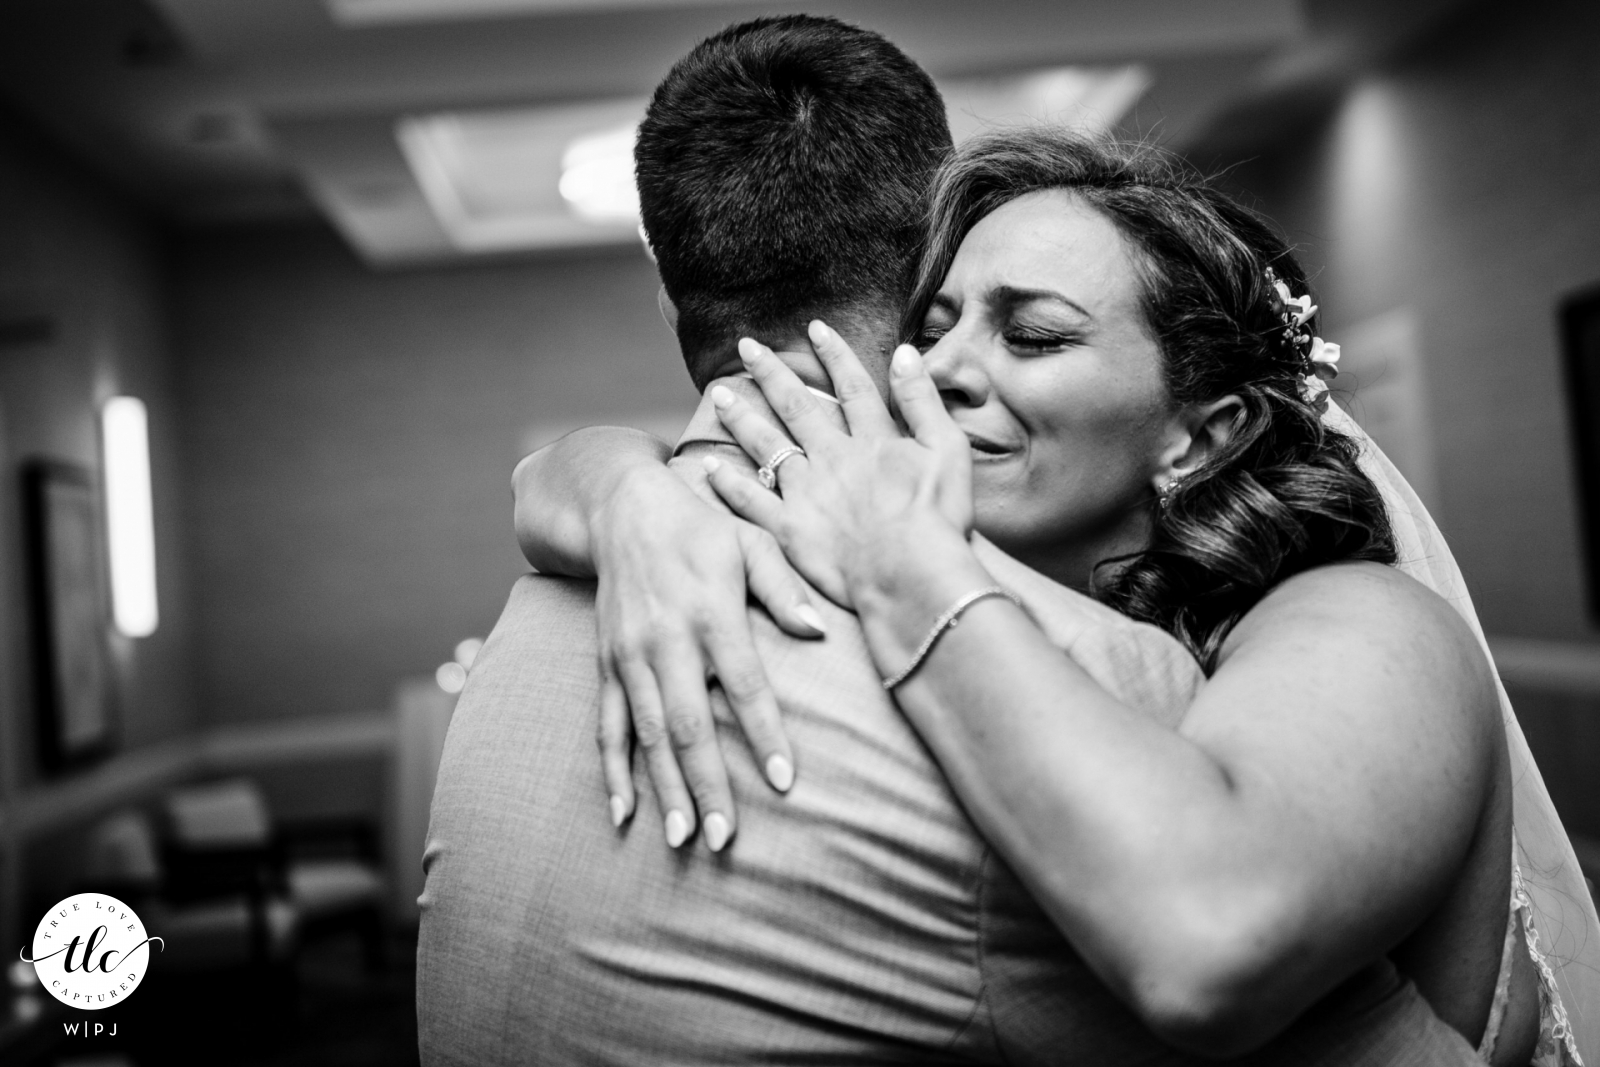 Annapolis, Maryland emotion and love wedding moment photo showing the bride After the ceremony was over she grabbed her husband and just fell into his arms and cried